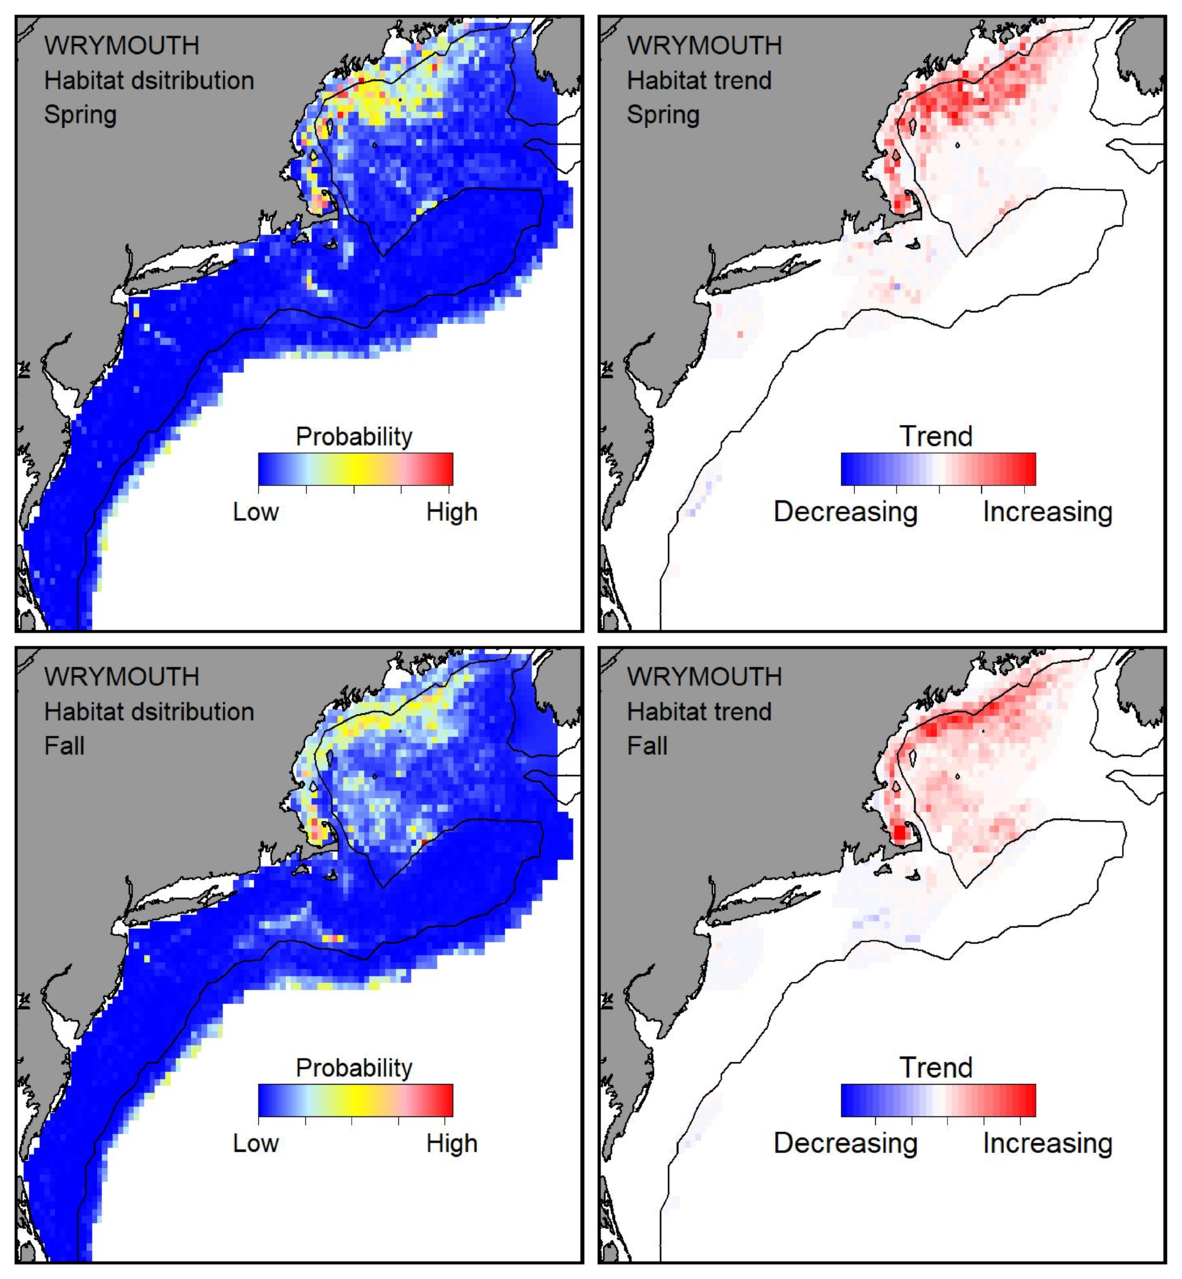 Probable habitat distribution for wrymouth showing the highest concentration and increasing trend in the Gulf of Maine during the spring. Bottom row: Probable habitat distribution for wrymouth showing the highest concentration and increasing trend in the Gulf of Maine during the fall.